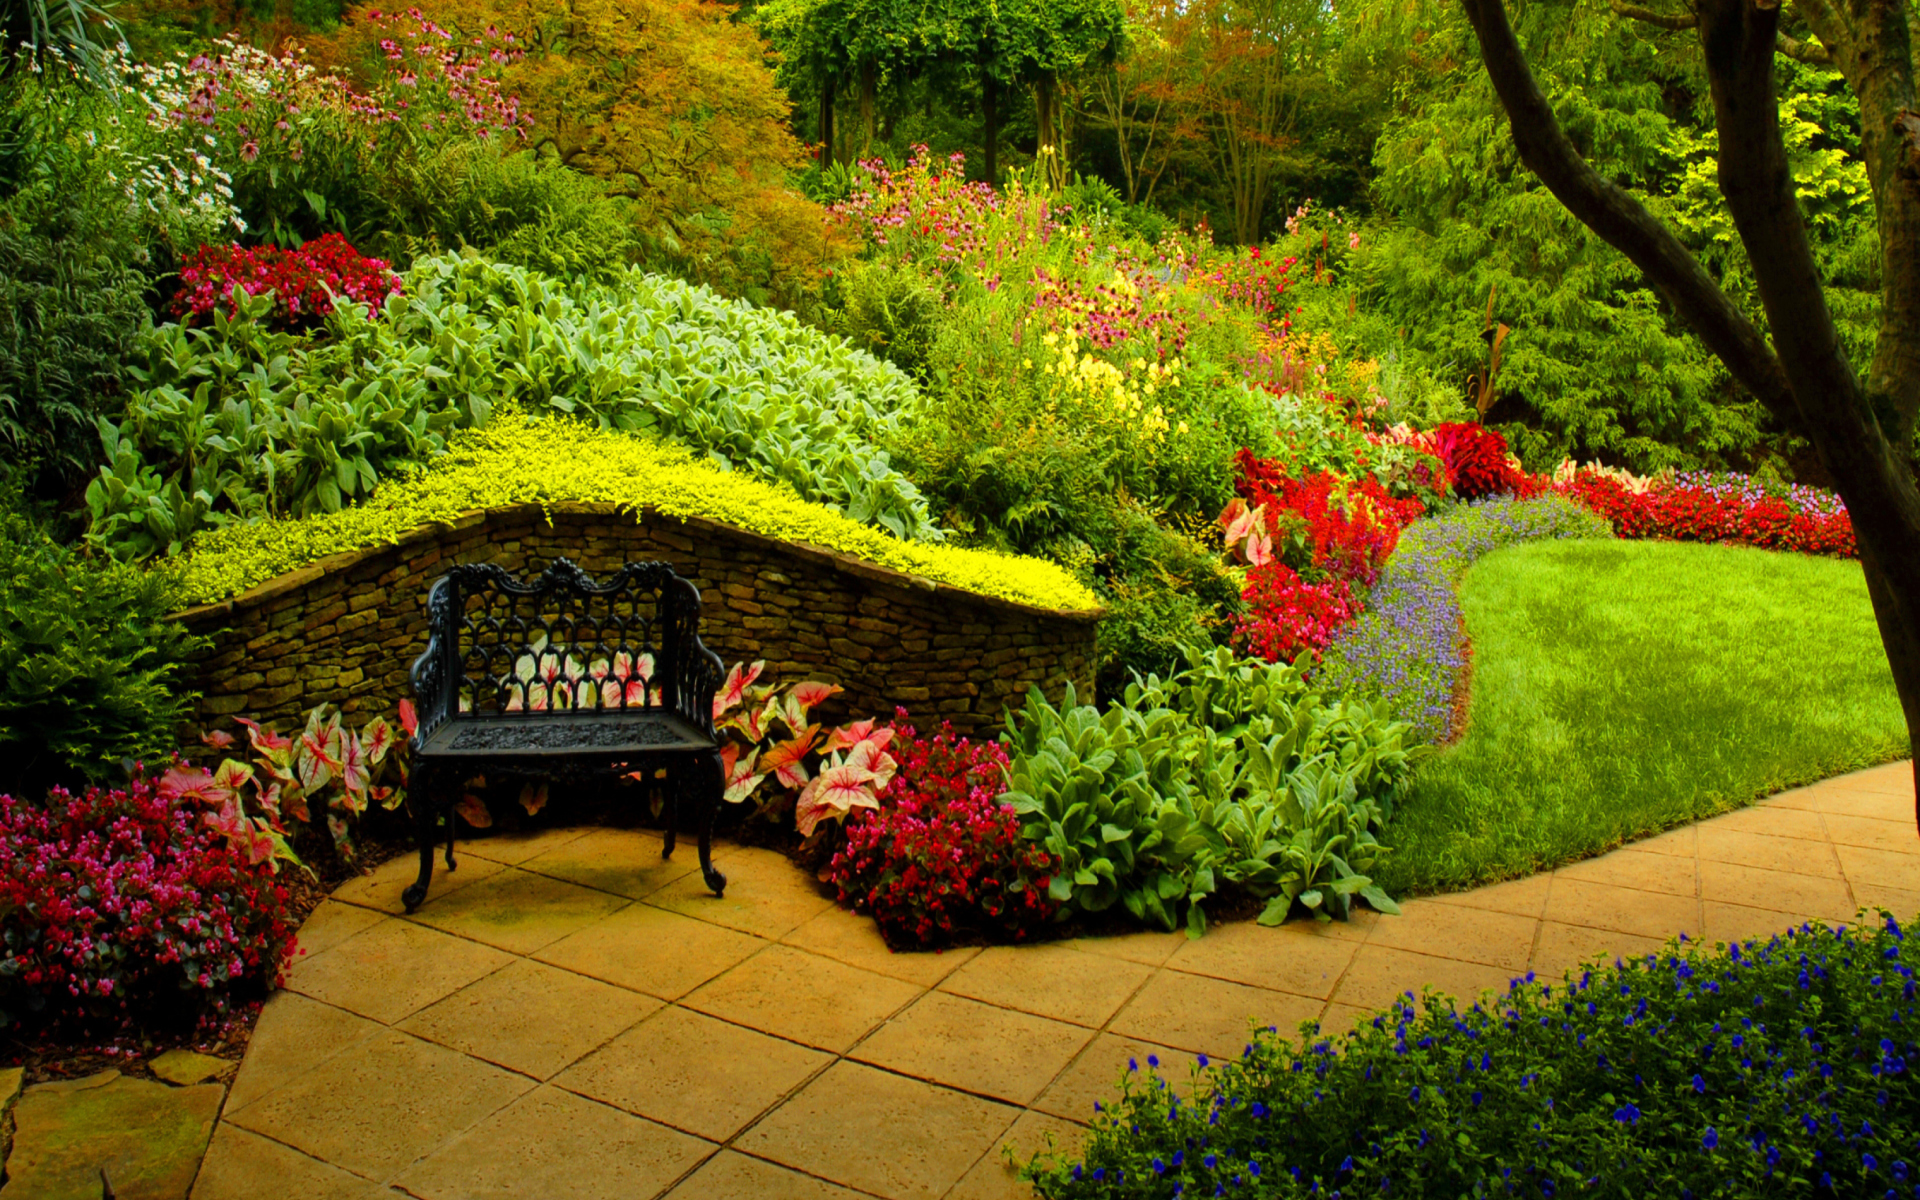 Bench In Spring Park Hd Wallpaper Background Image 1920x1200